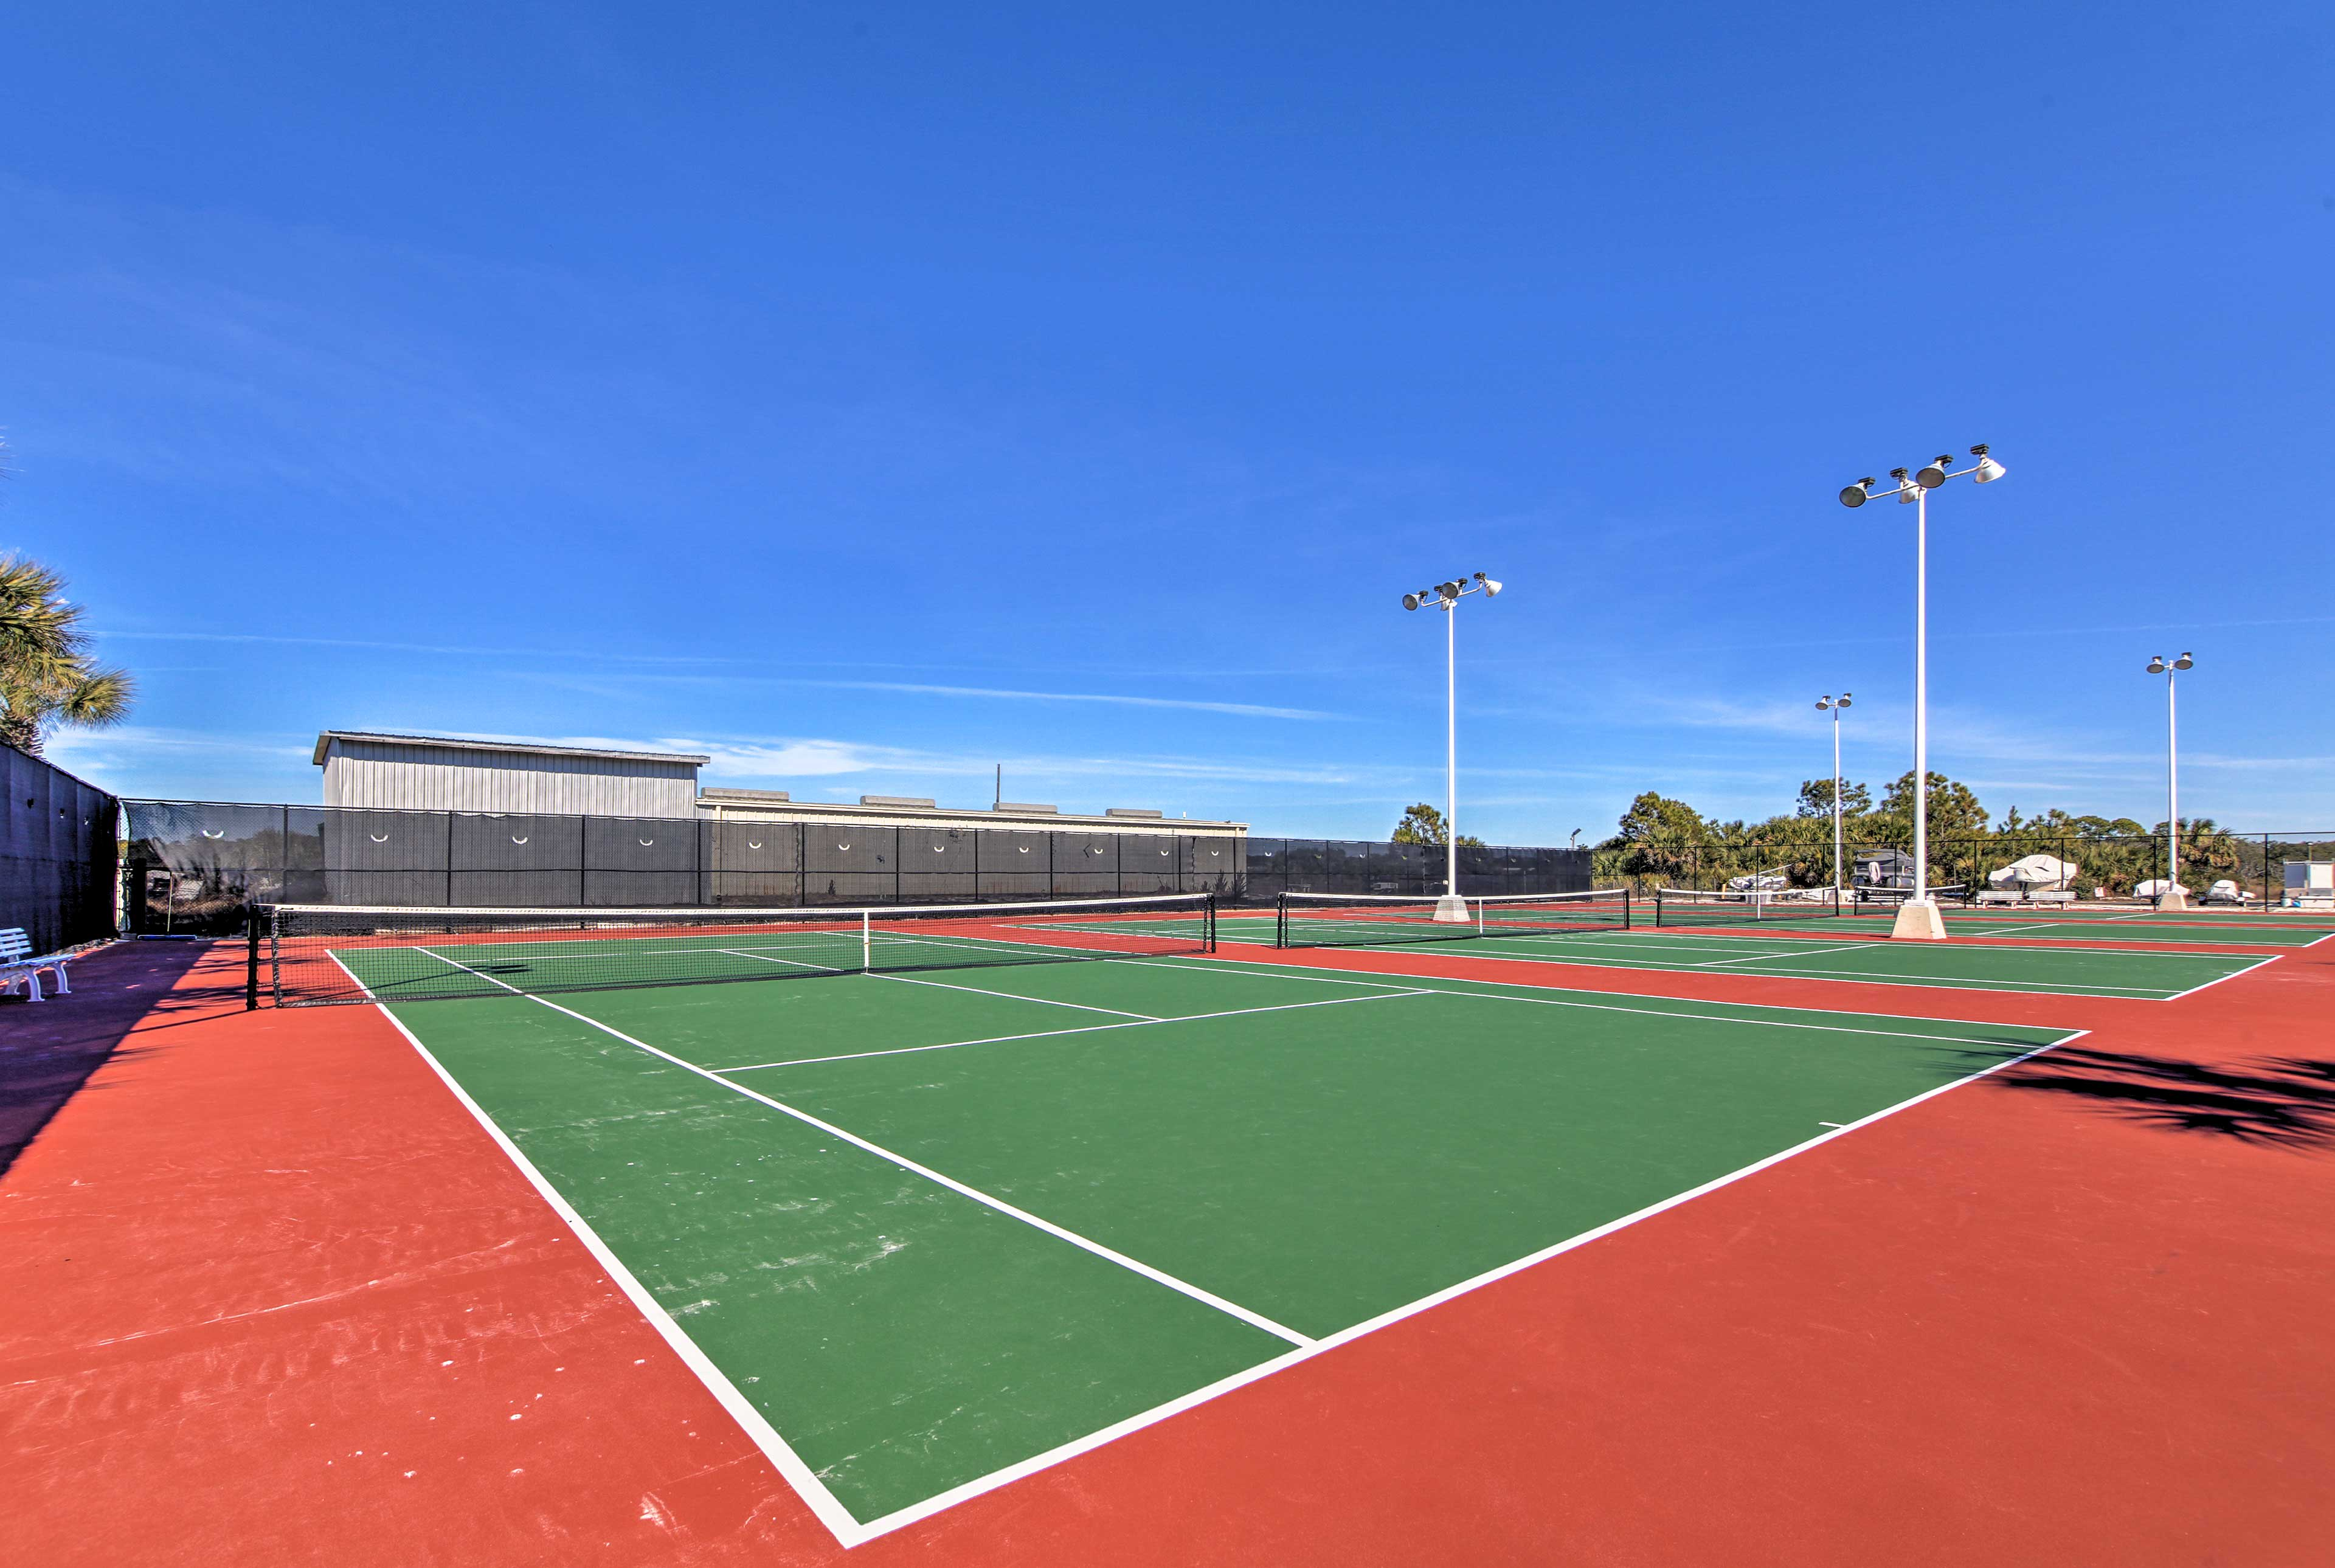 Play a game of tennis during downtime.